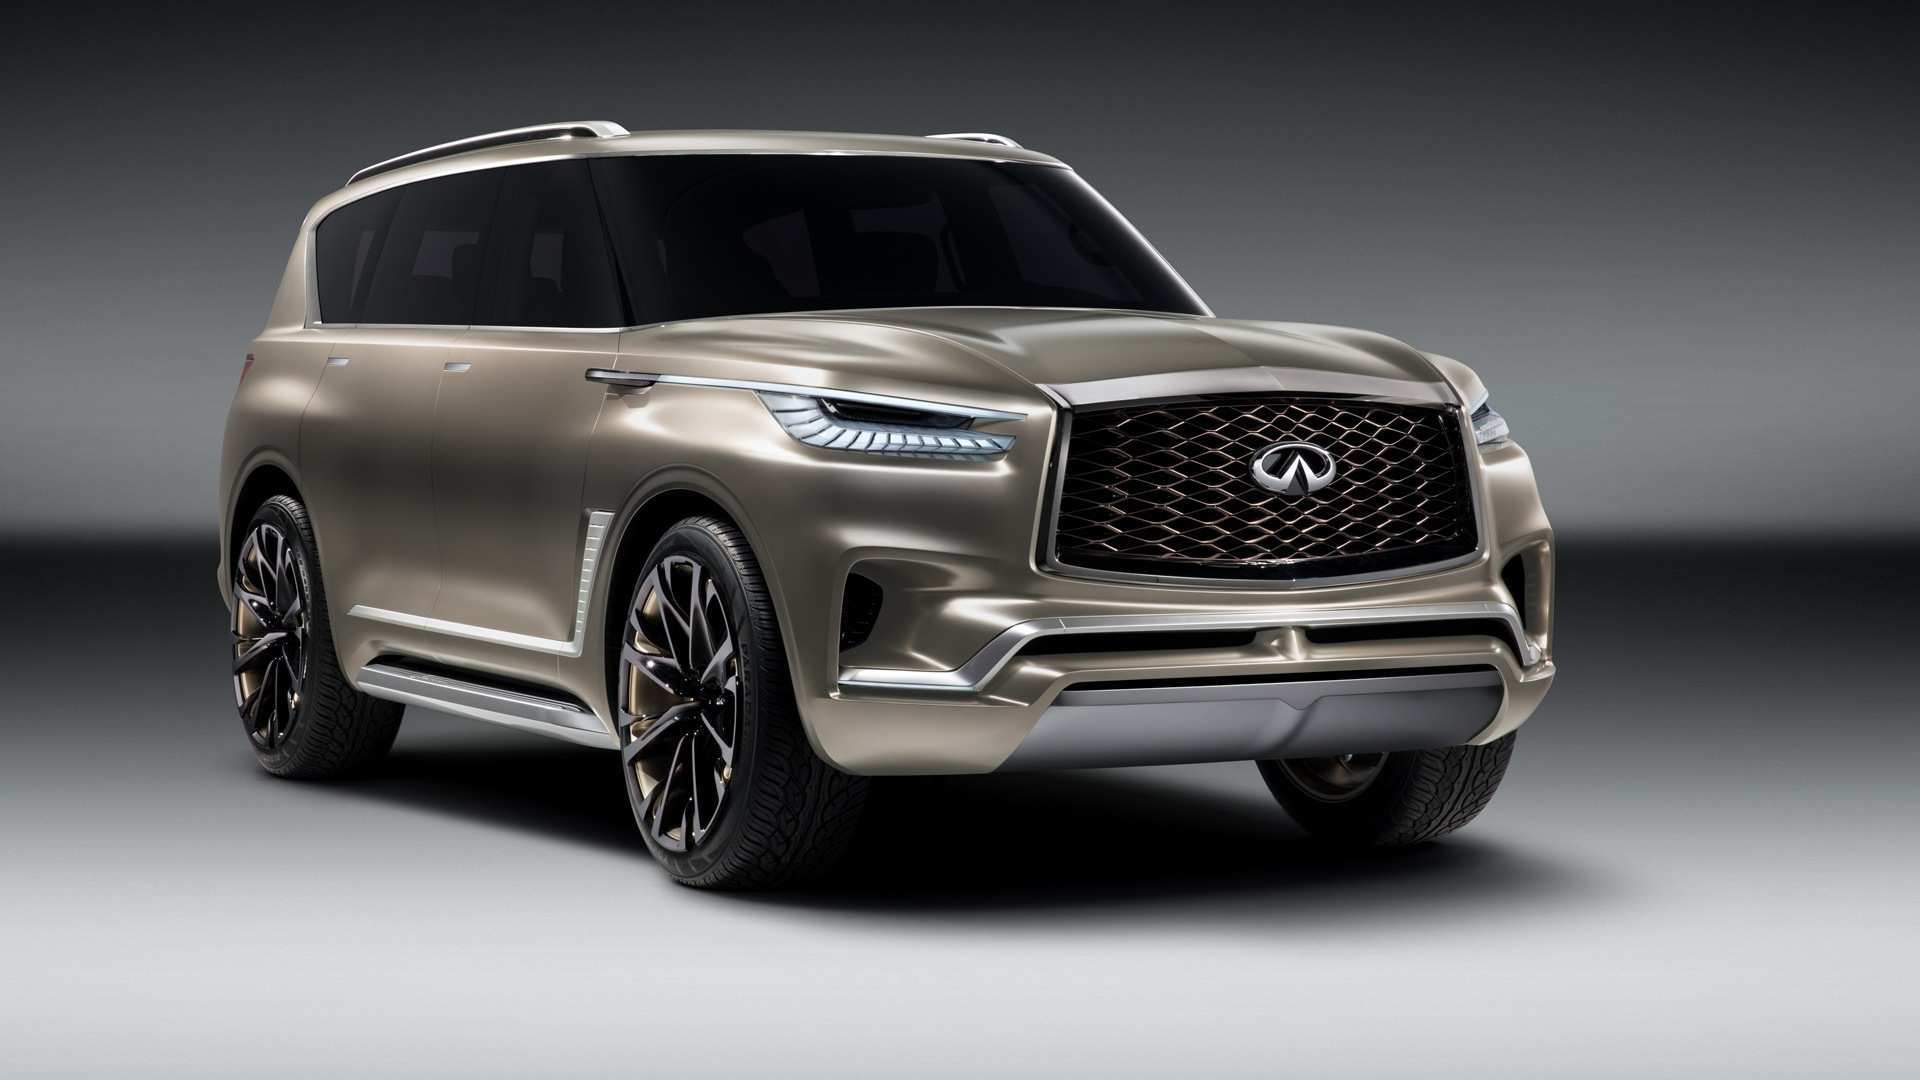 28 Gallery of 2020 Infiniti Qx80 New Concept Concept for 2020 Infiniti Qx80 New Concept